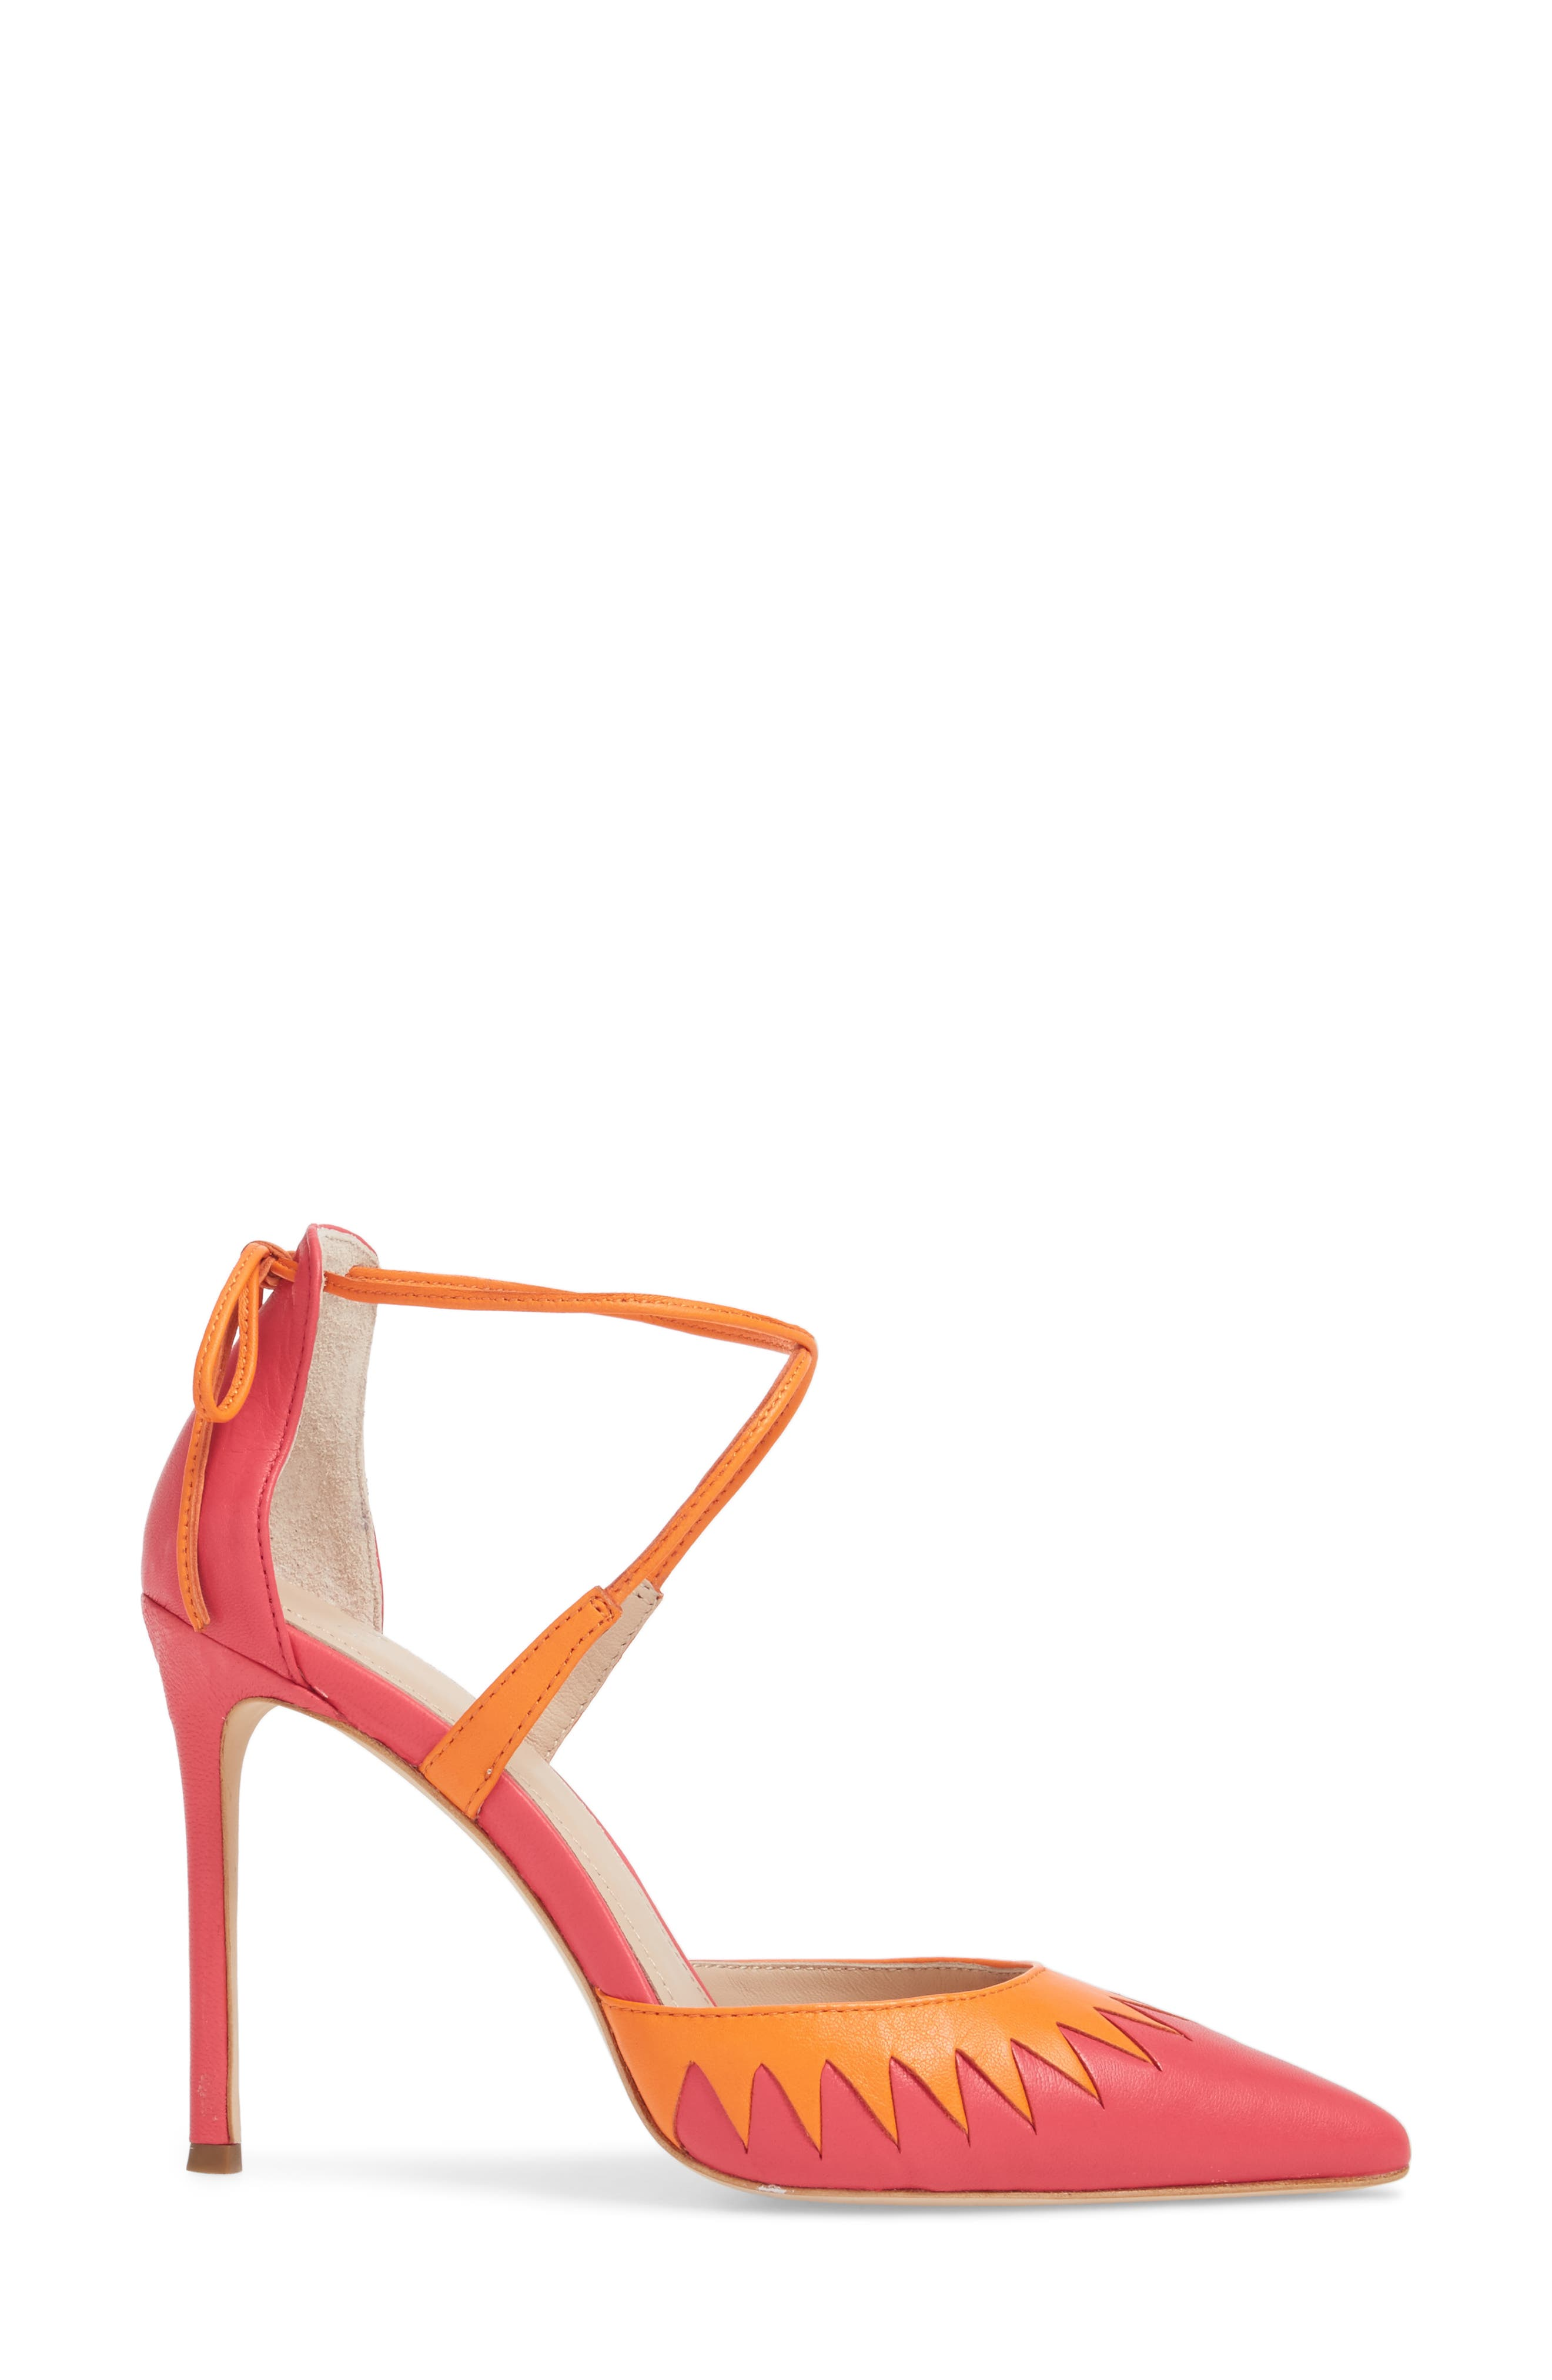 Cenya Pump,                             Alternate thumbnail 3, color,                             Azalea/ Orange Blossom Leather